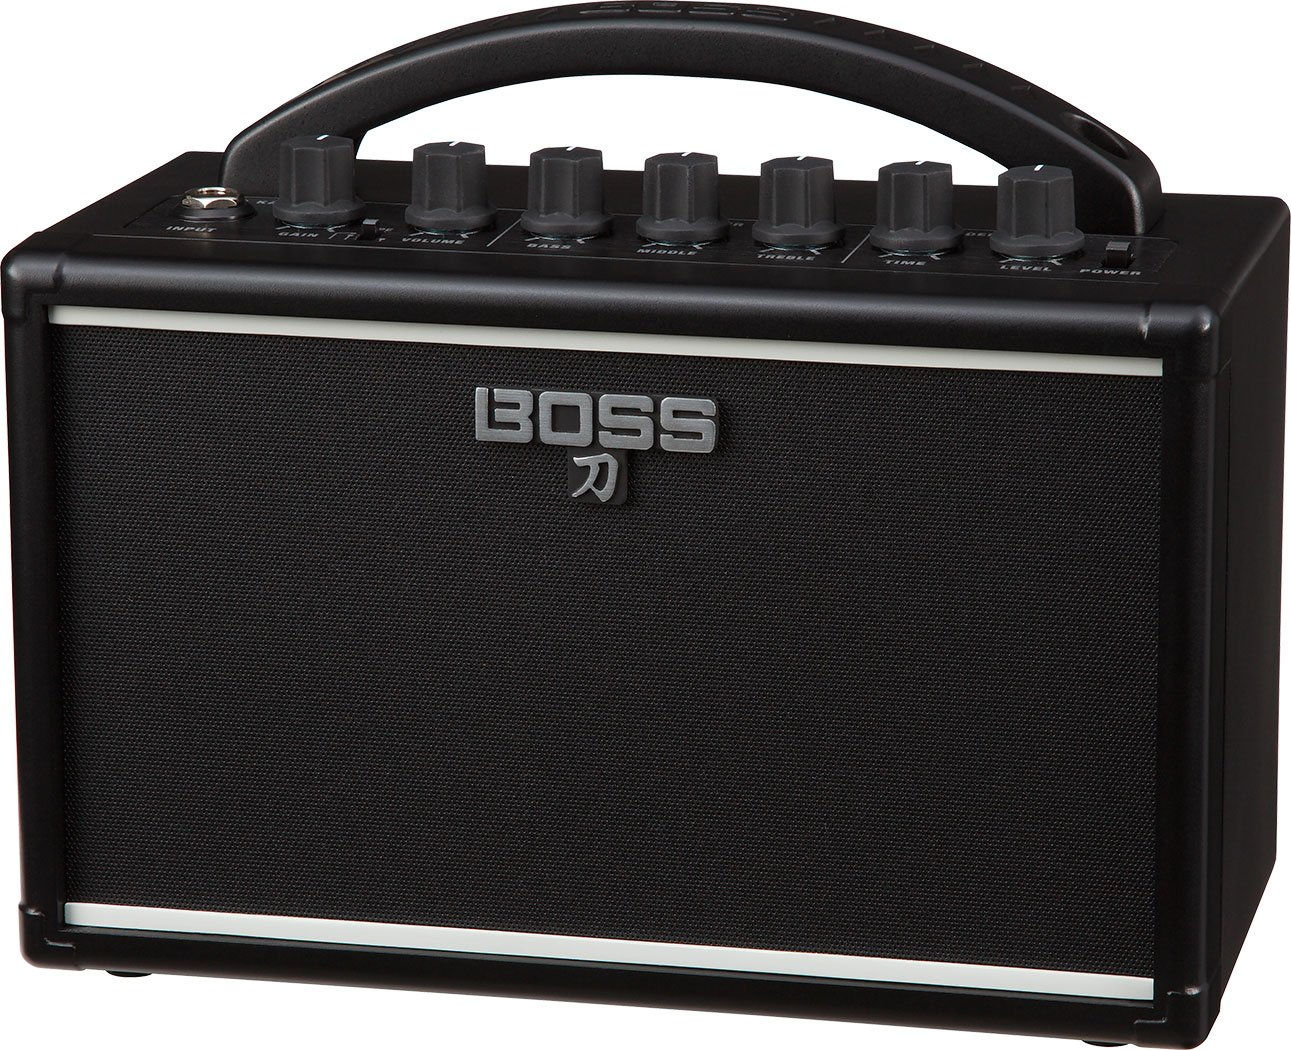 BOSS Katana Mini Guitar Amplifier Bundle with Hosa 5-FT Straight Instrument Cable (1/4in), Blucoil Slim 9V Power Supply AC Adapter, 2-Pack of Pedal Patch Cables and 4-Pack of Celluloid Guitar Picks by blucoil (Image #2)